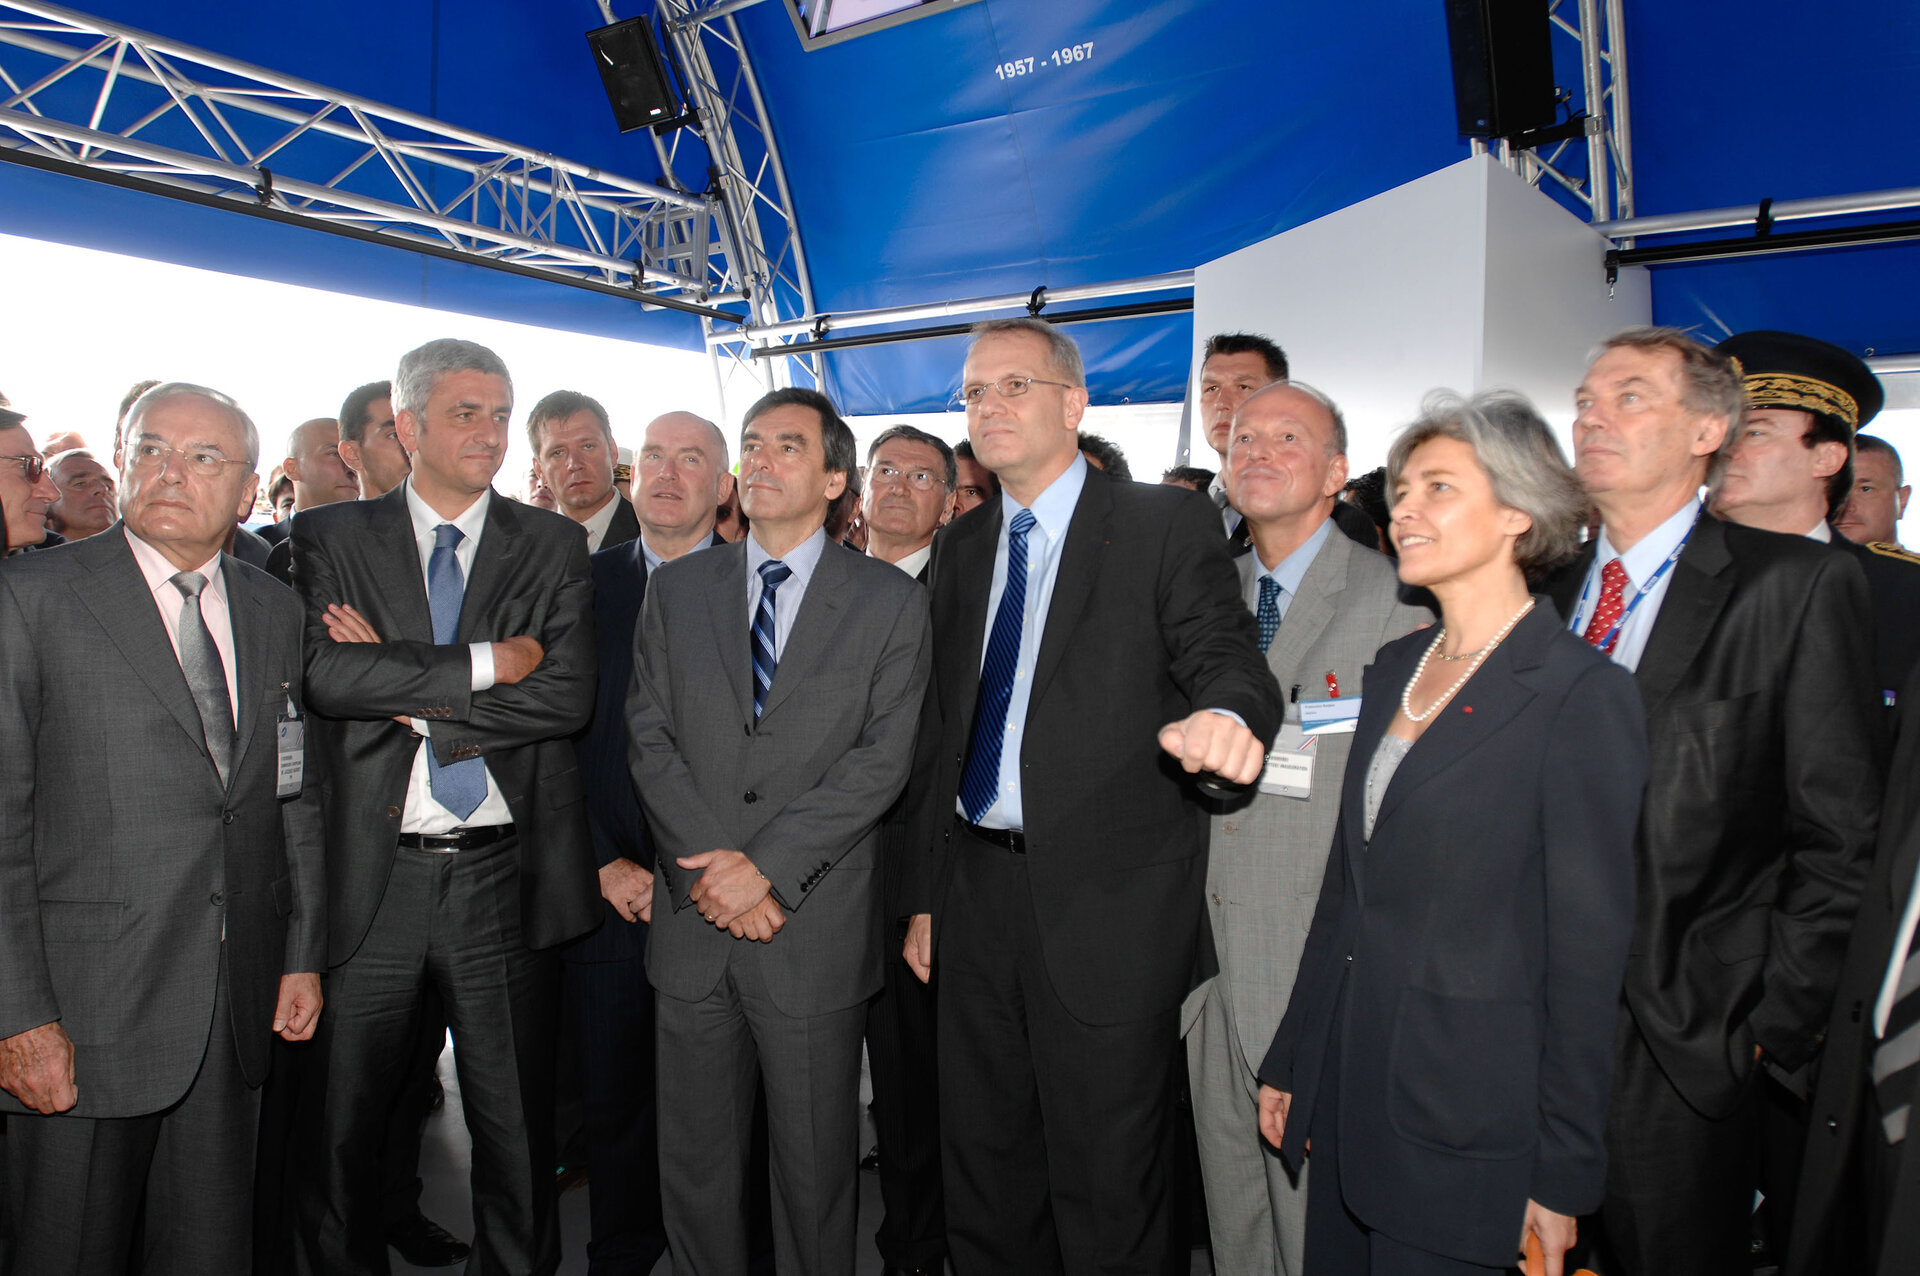 Inauguration of the Paris Air Show, Le Bourget 2007 with M. Fillon, French Prime Minister